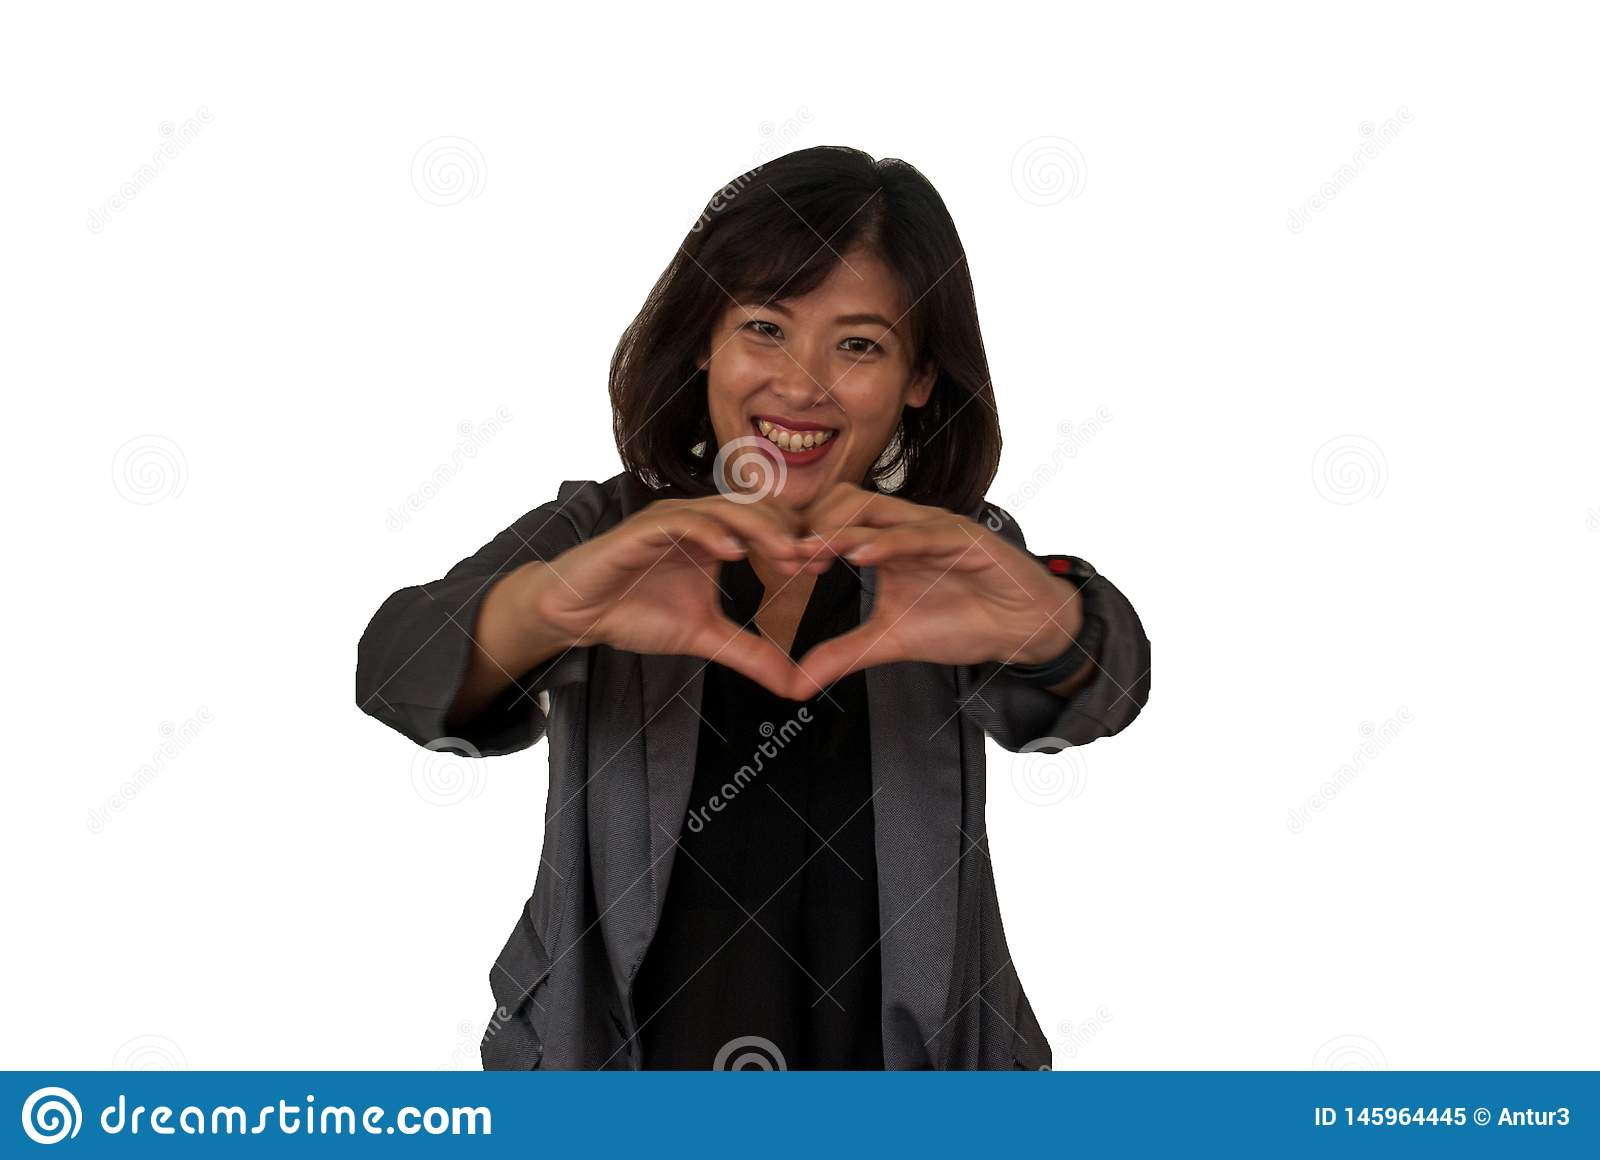 The genre of female businessmen creates hearts with his hands